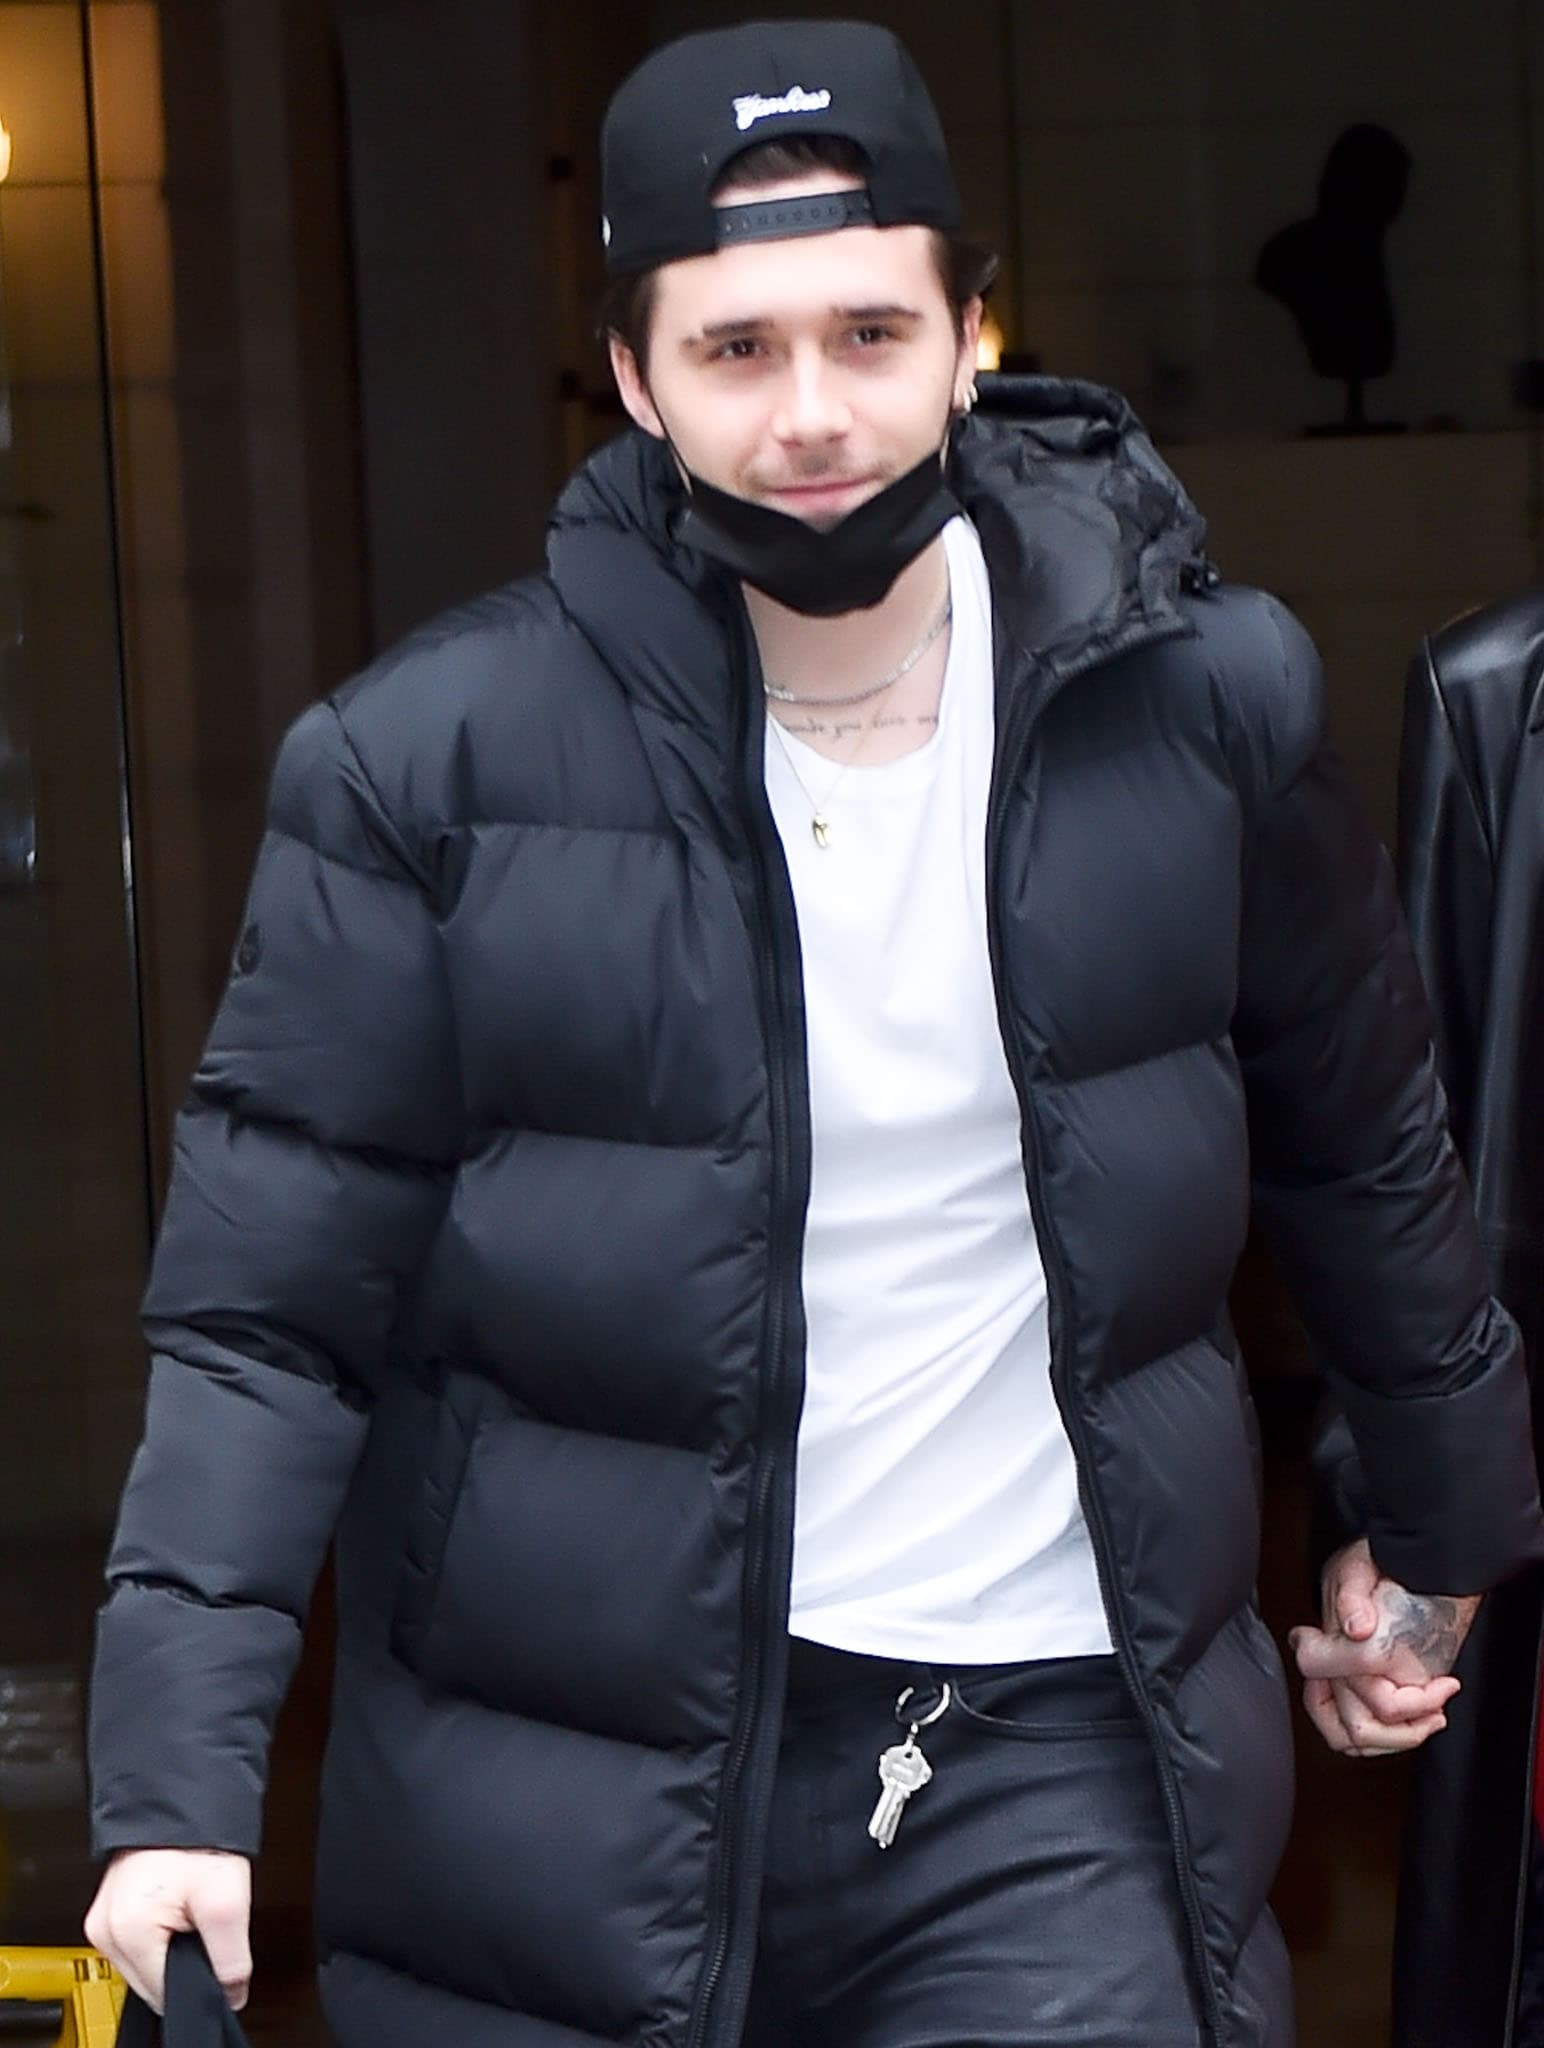 Brooklyn Beckham looks cool in a black Superdry puffy duvet coat with a white tee underneath